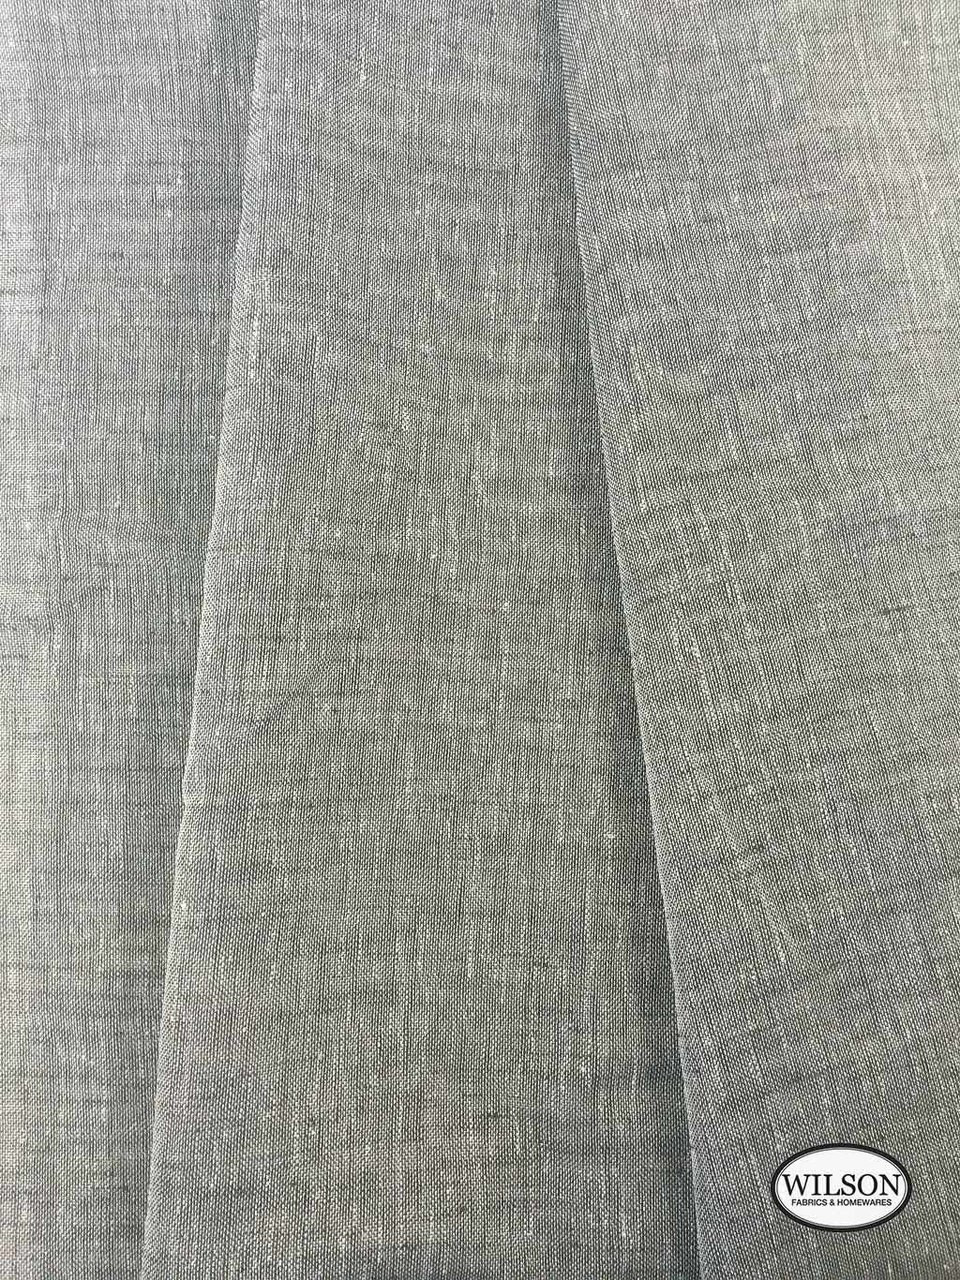 Wilson - Sabre - Charcoal    Upholstery Fabric - Grey, Plain, Synthetic, Domestic Use, Textured Weave, Plain - Textured Weave, Weighted Hem, Wide Width